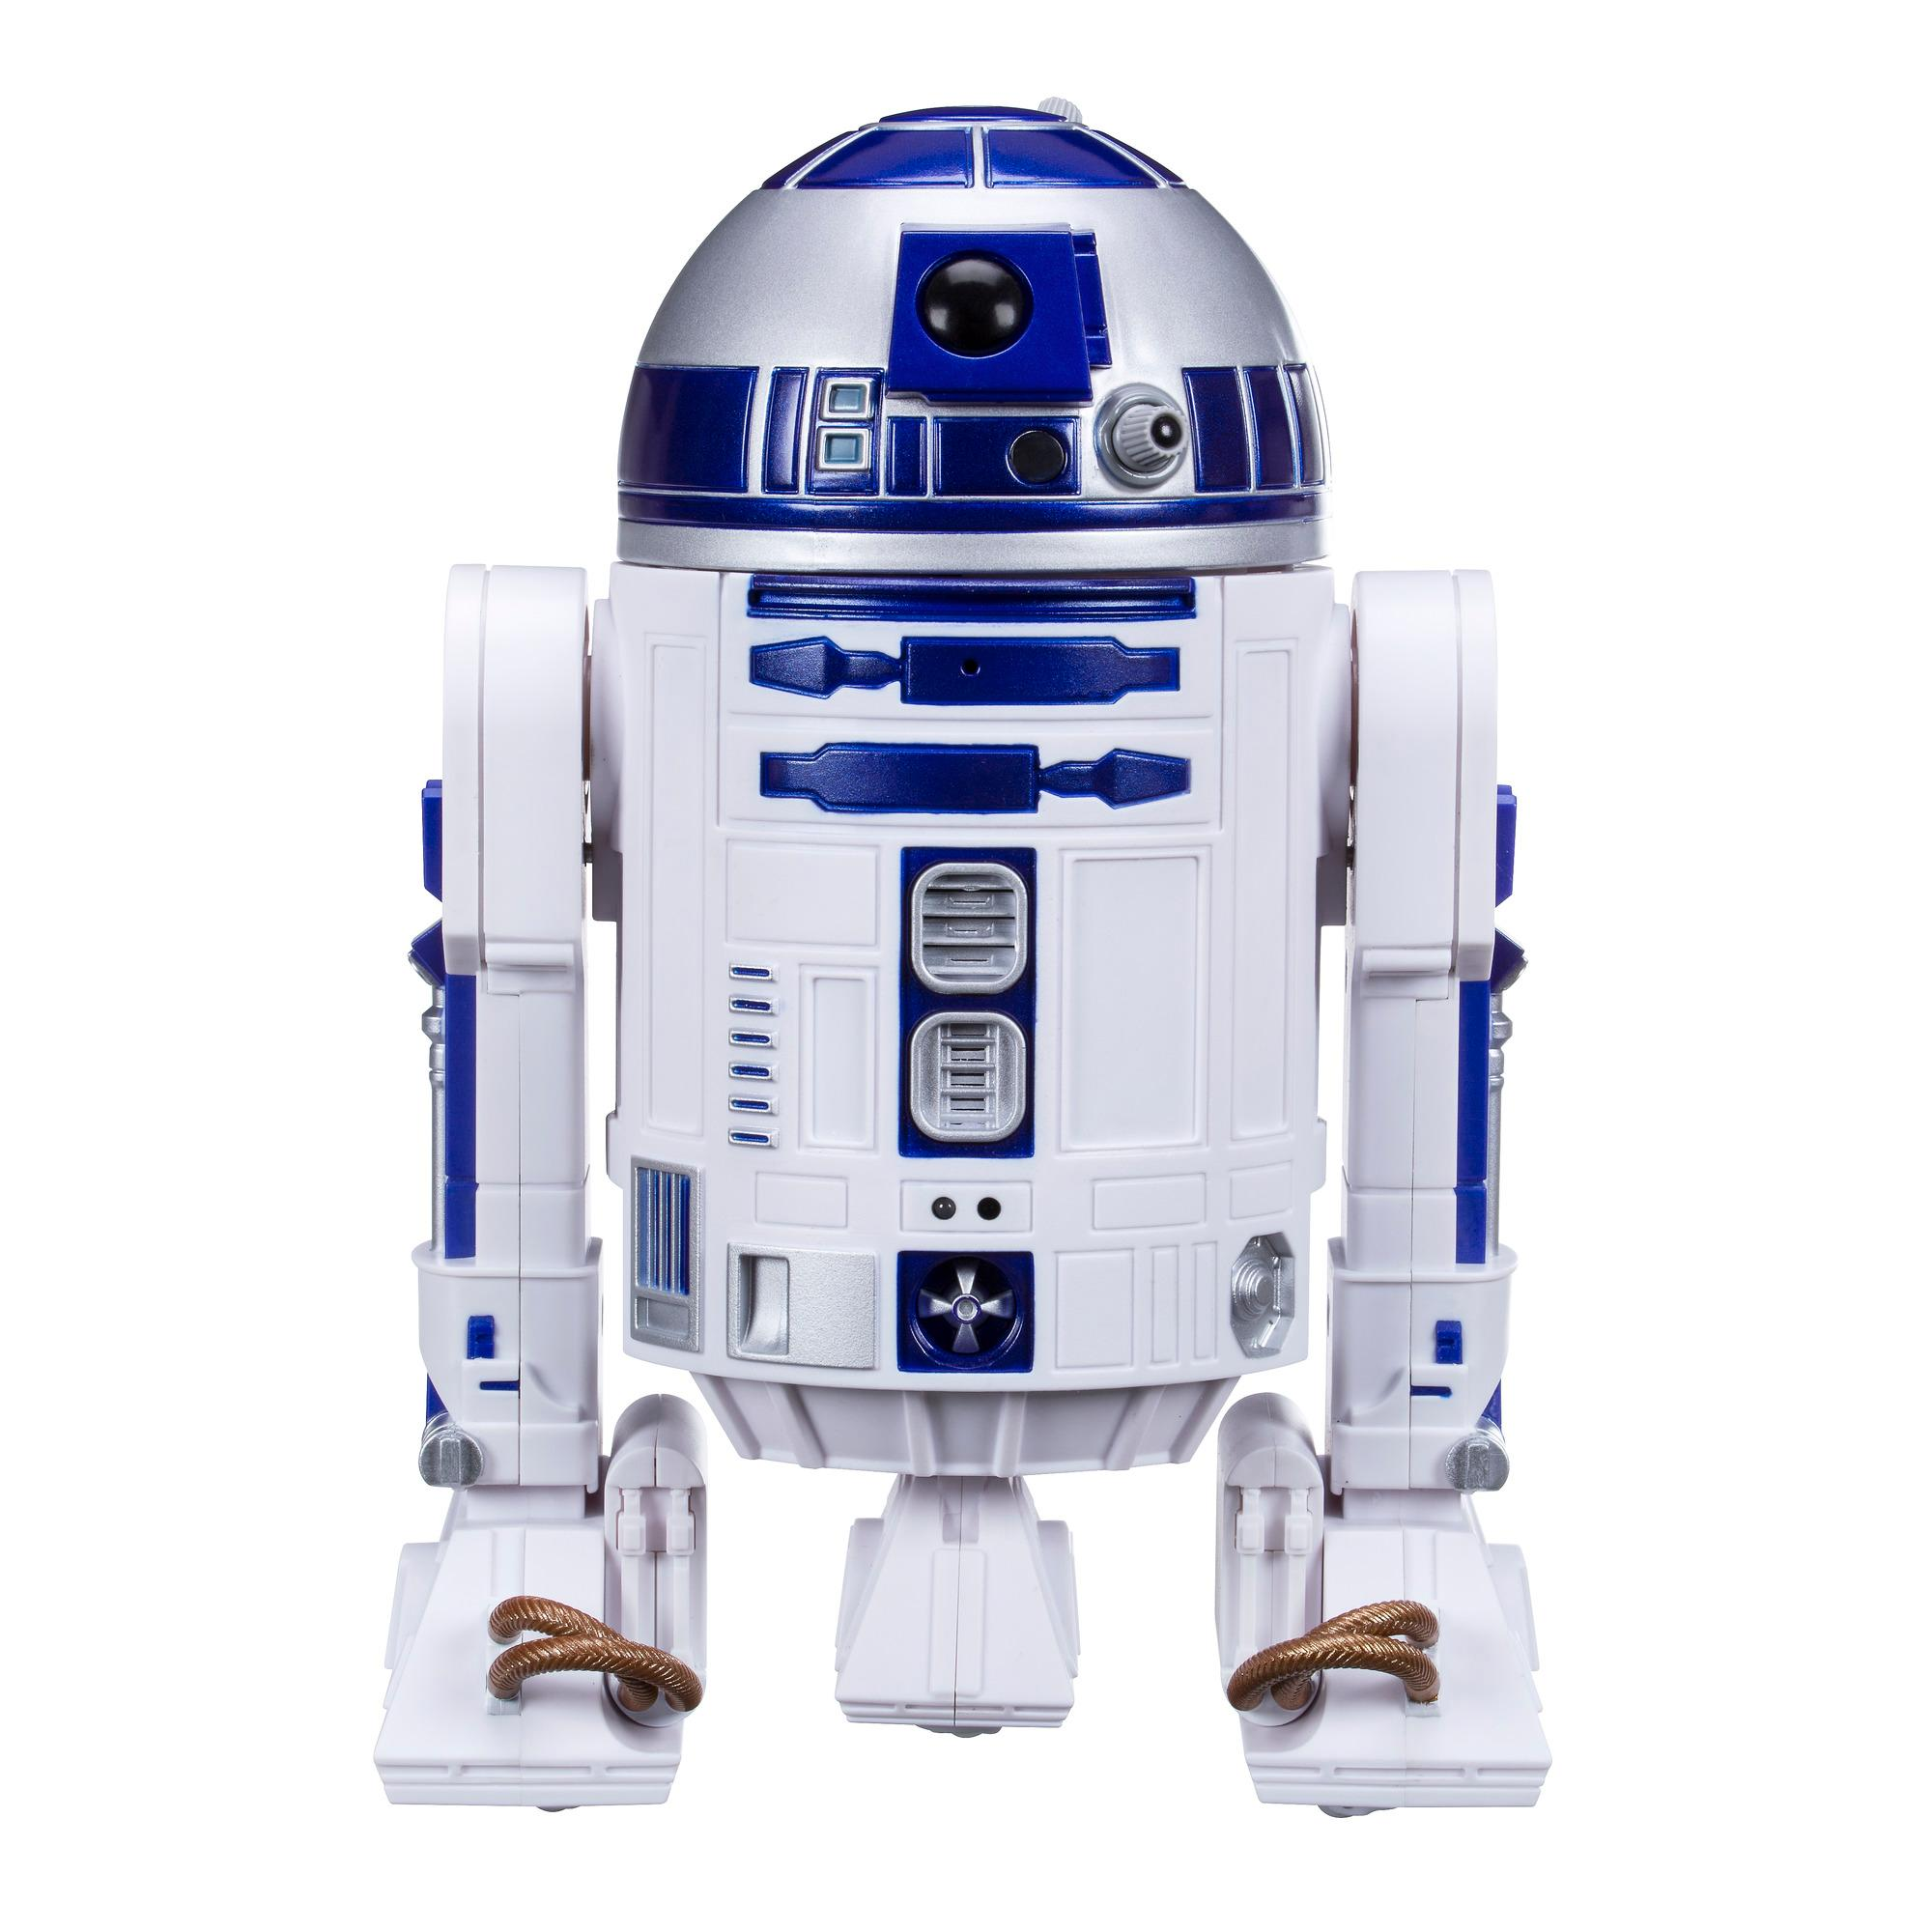 Star Wars: The Last Jedi - Smart R2-D2